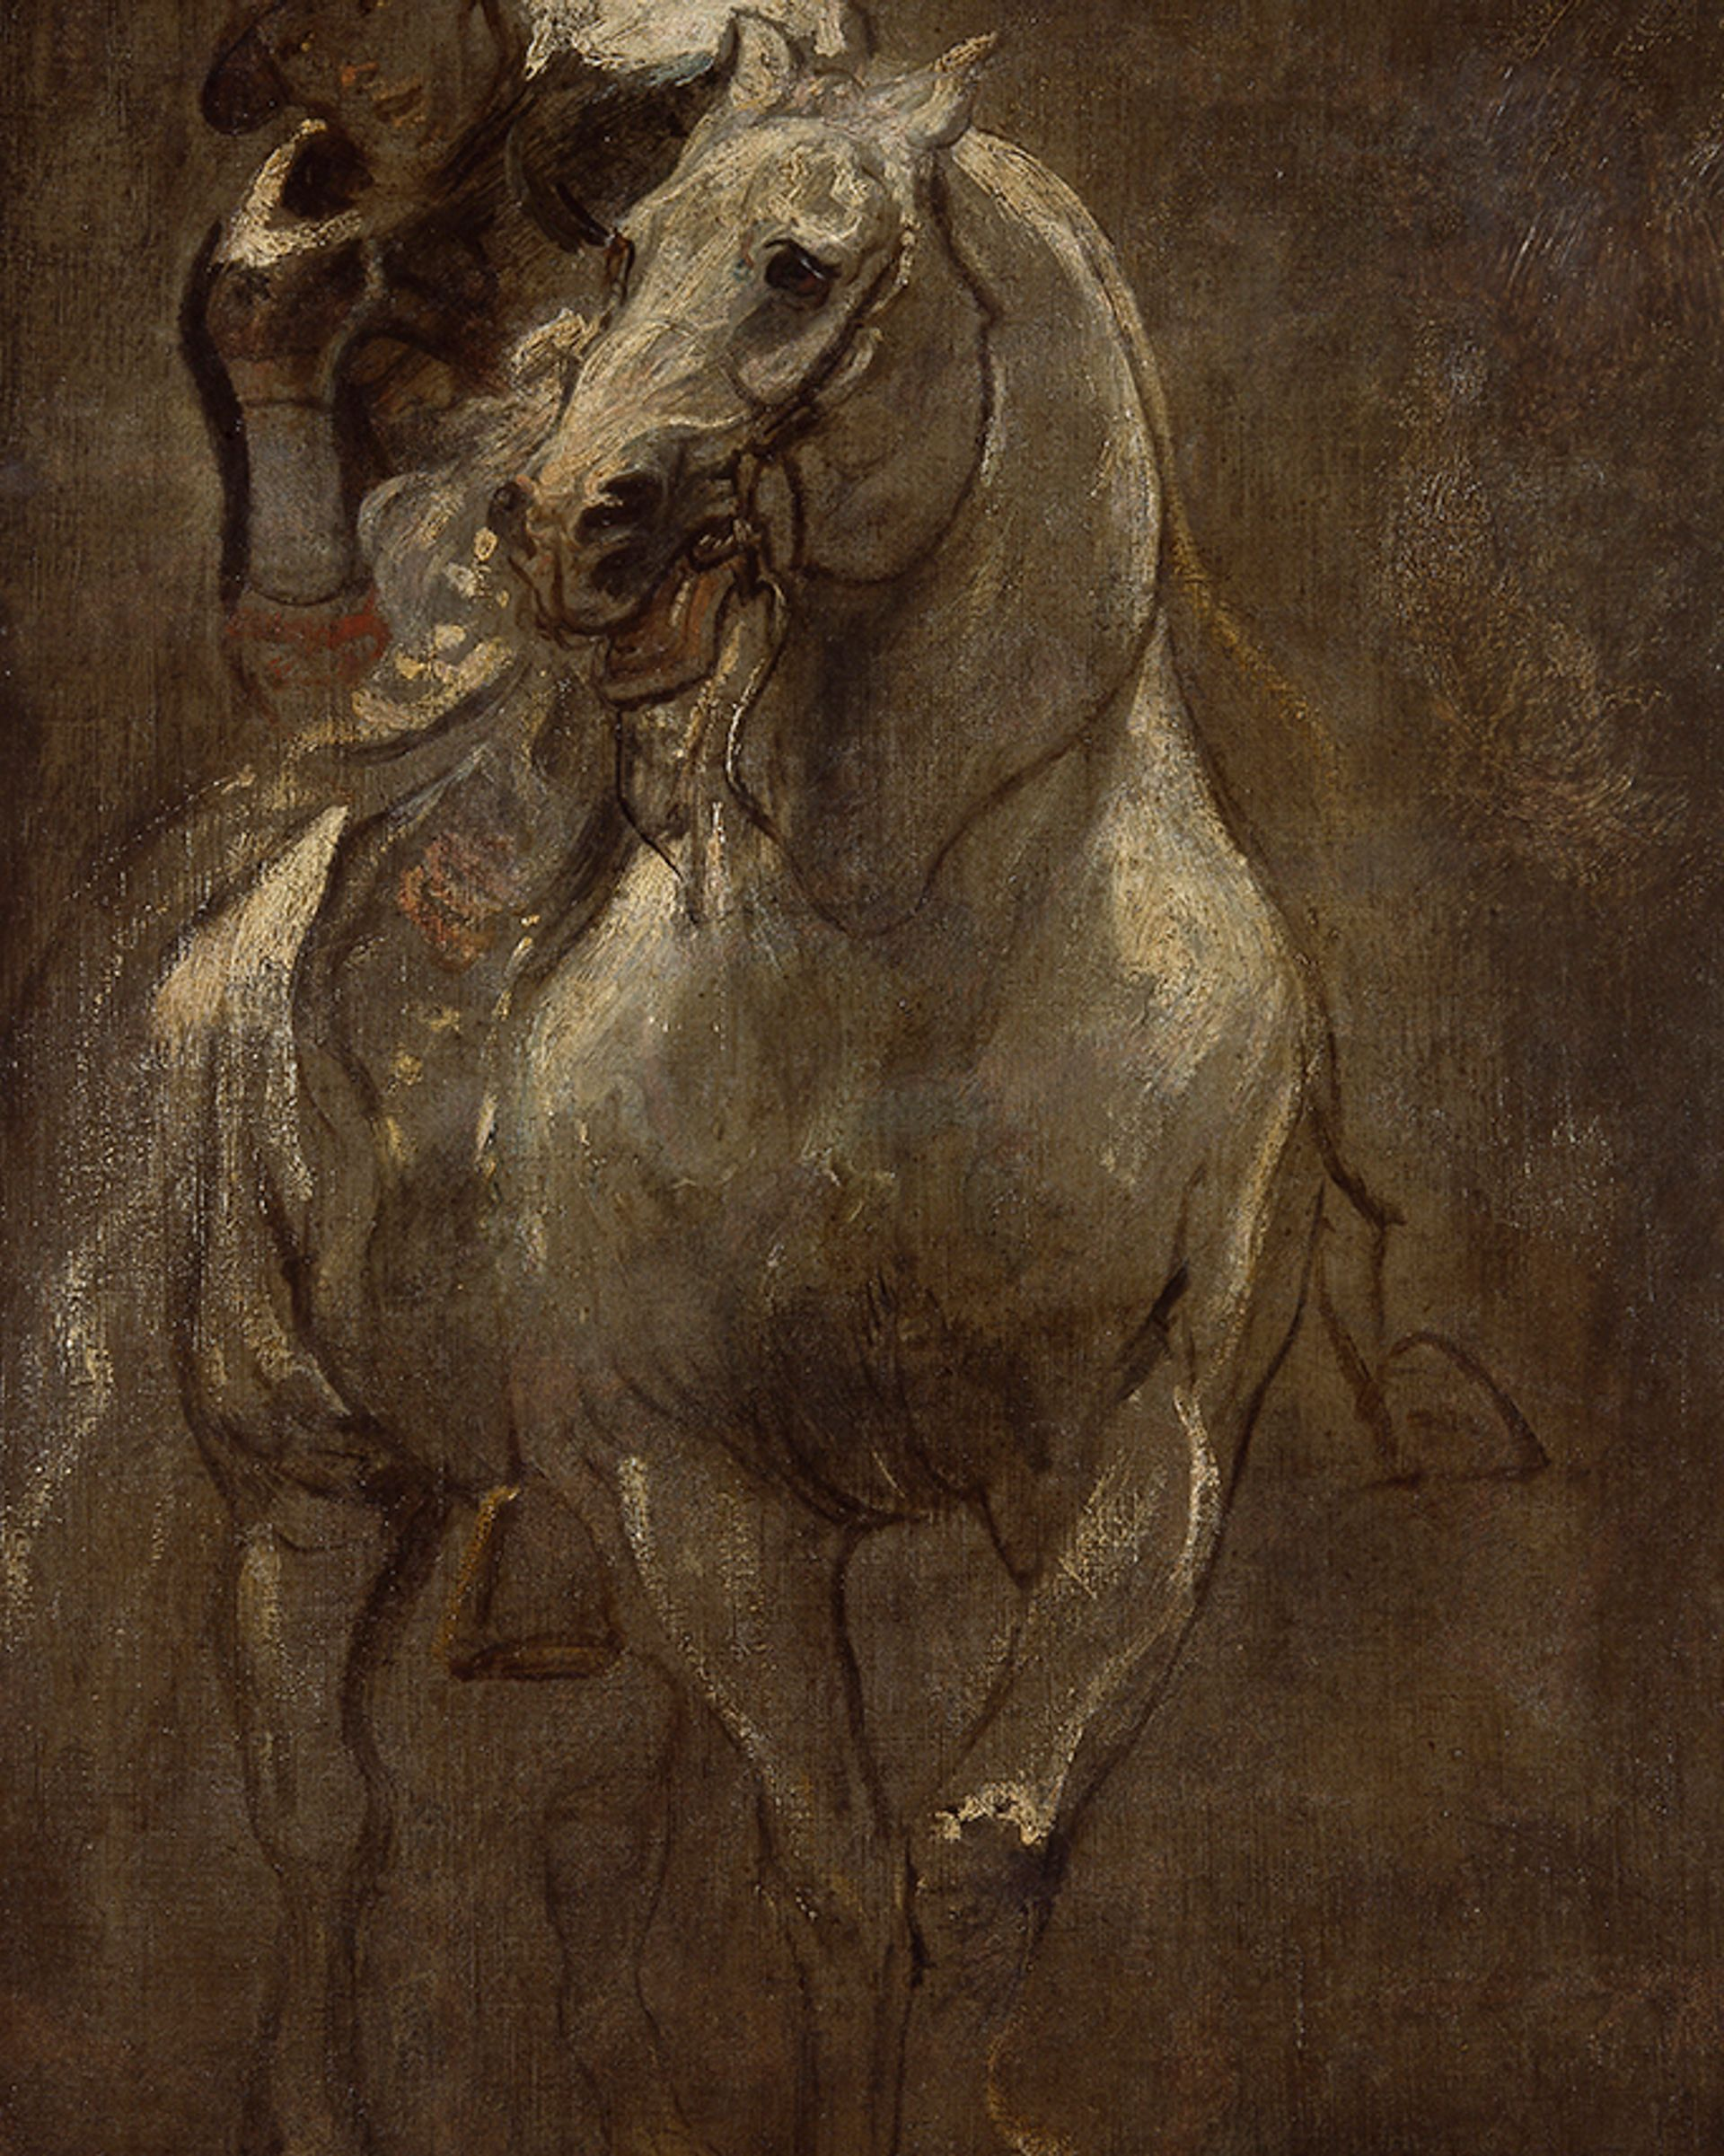 Antony Van Dyck's A Soldier on Horseback (around 1616) Courtesy of Thames Valley Police